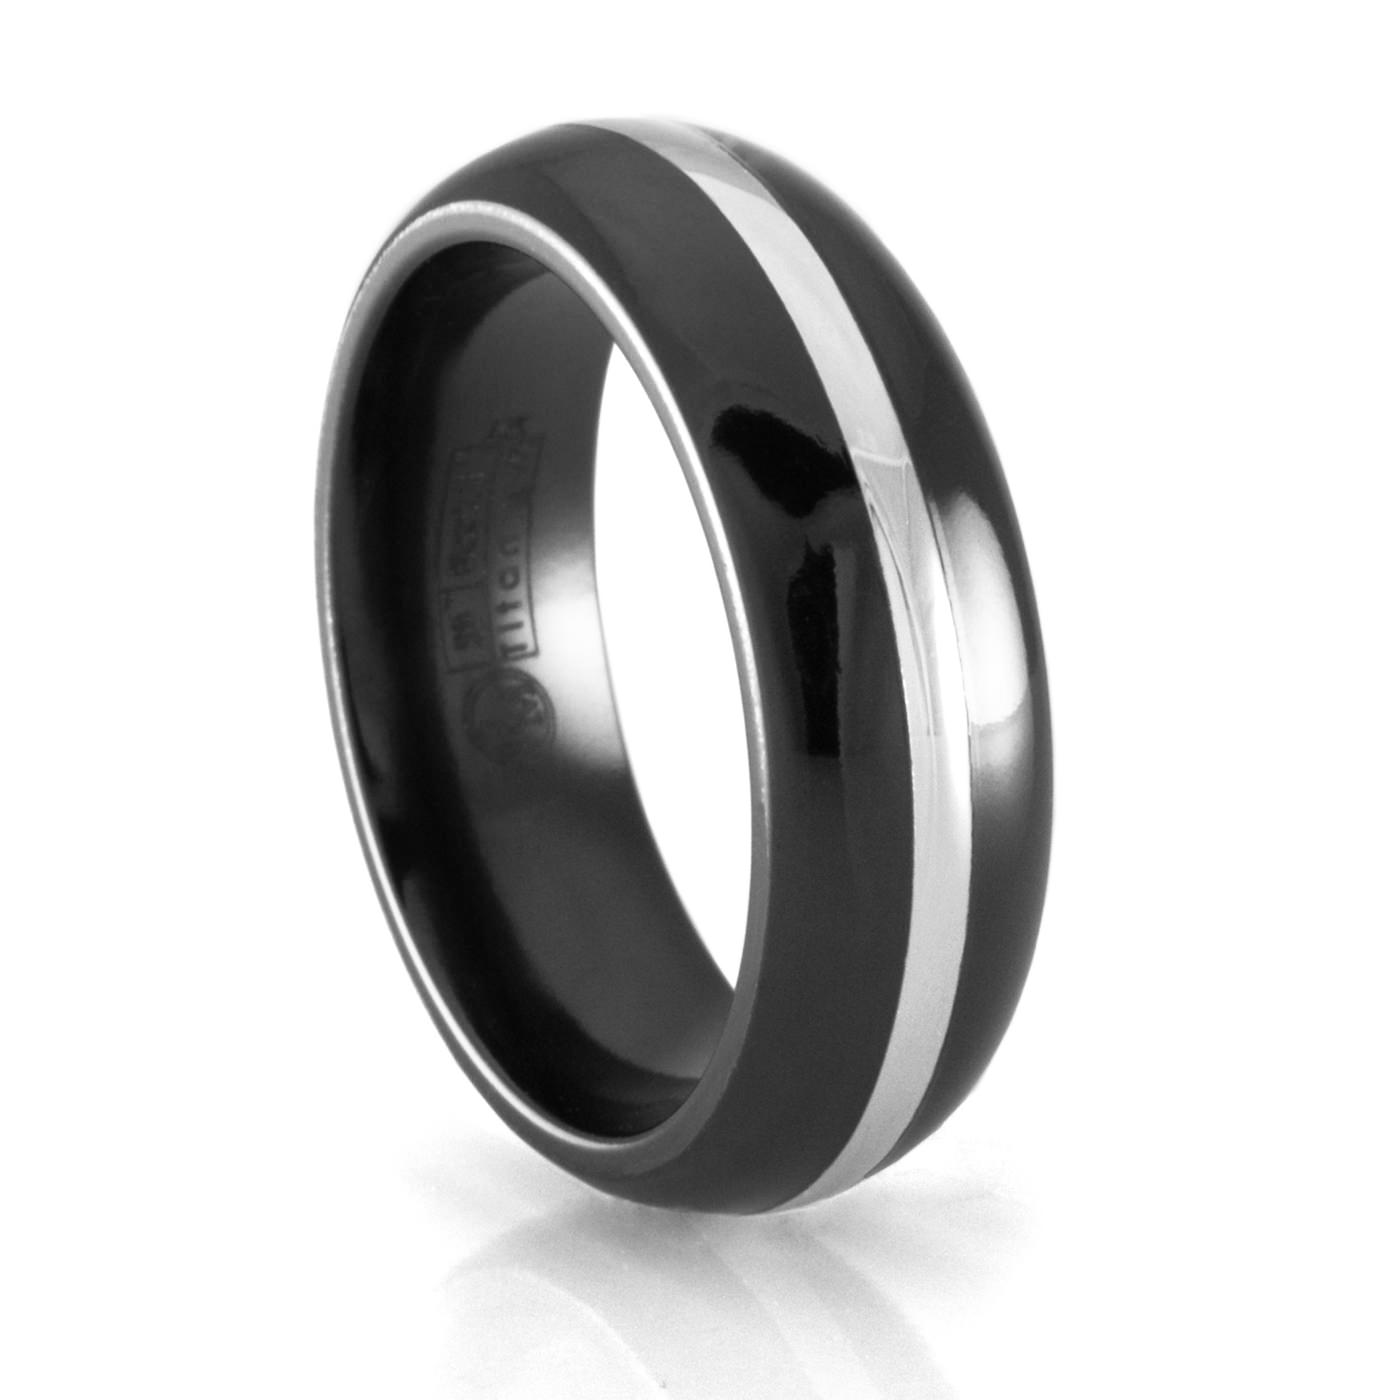 black rings thick wedding tlr bands striped bla gold line thin wm band tough ring product nobg love gol silicone str blackgold and wide